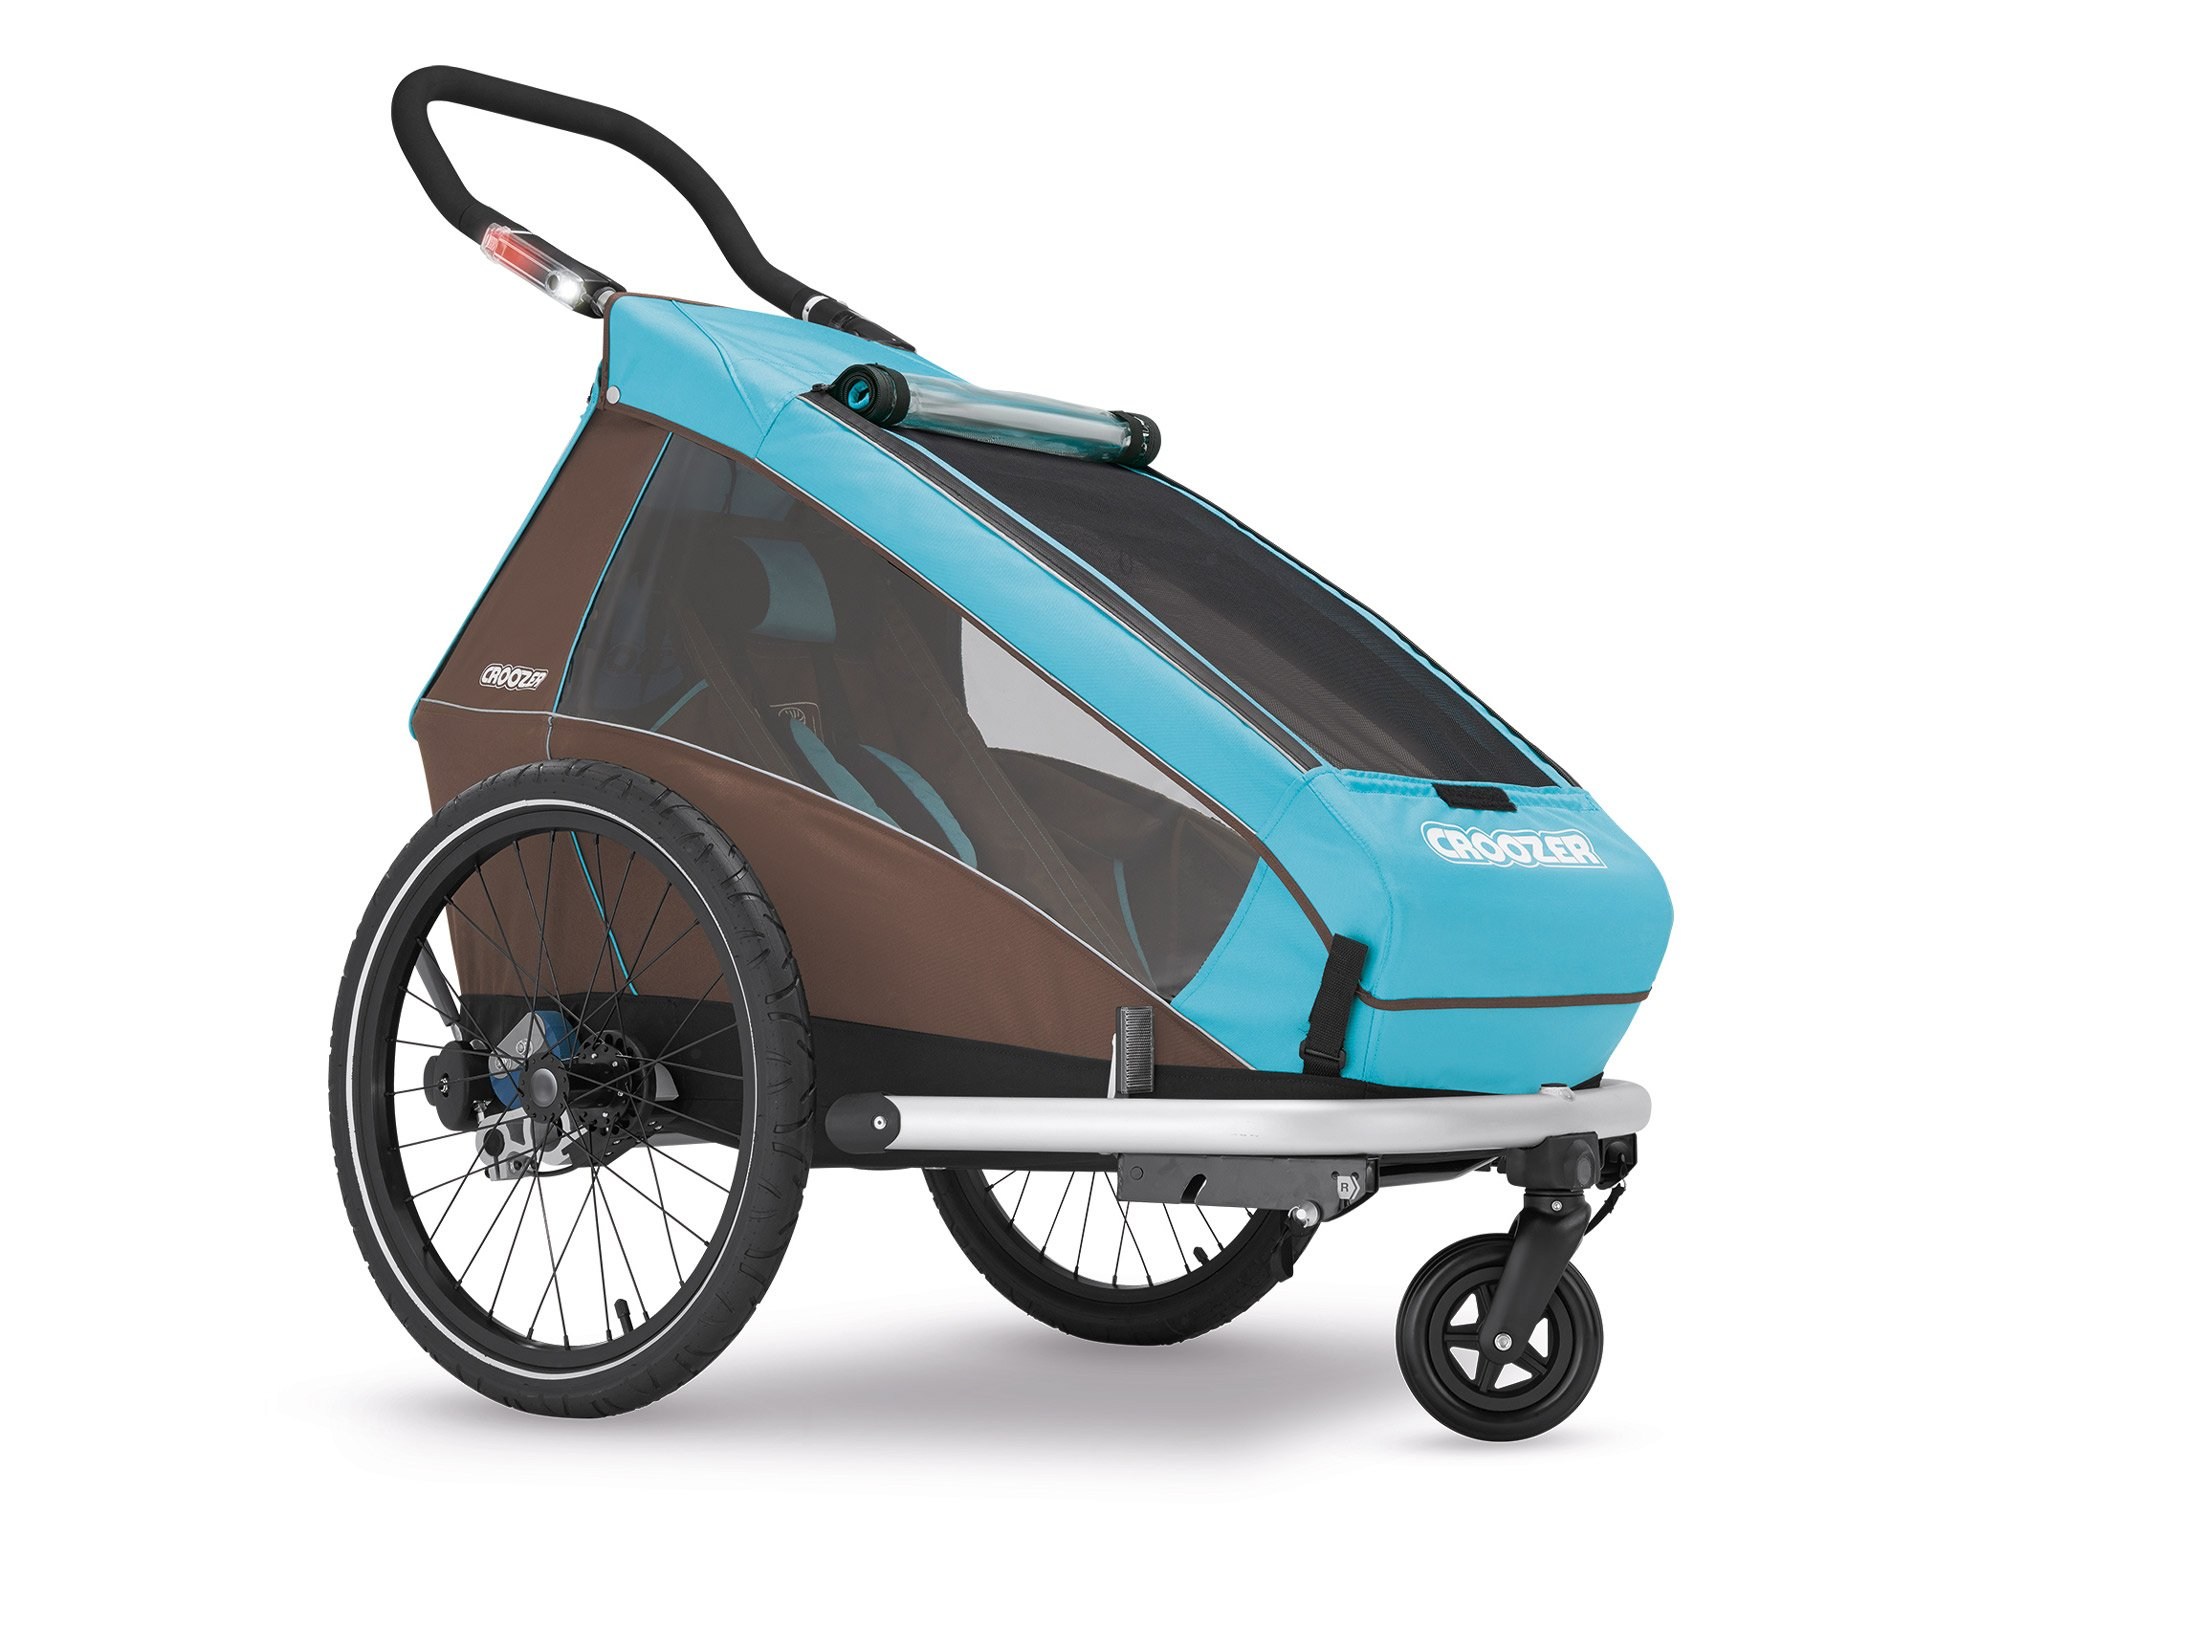 Croozer Kid Plus for 1 - 3 in 1 Single Child Trailer Sky Blue / Brown by Croozer (Image #2)